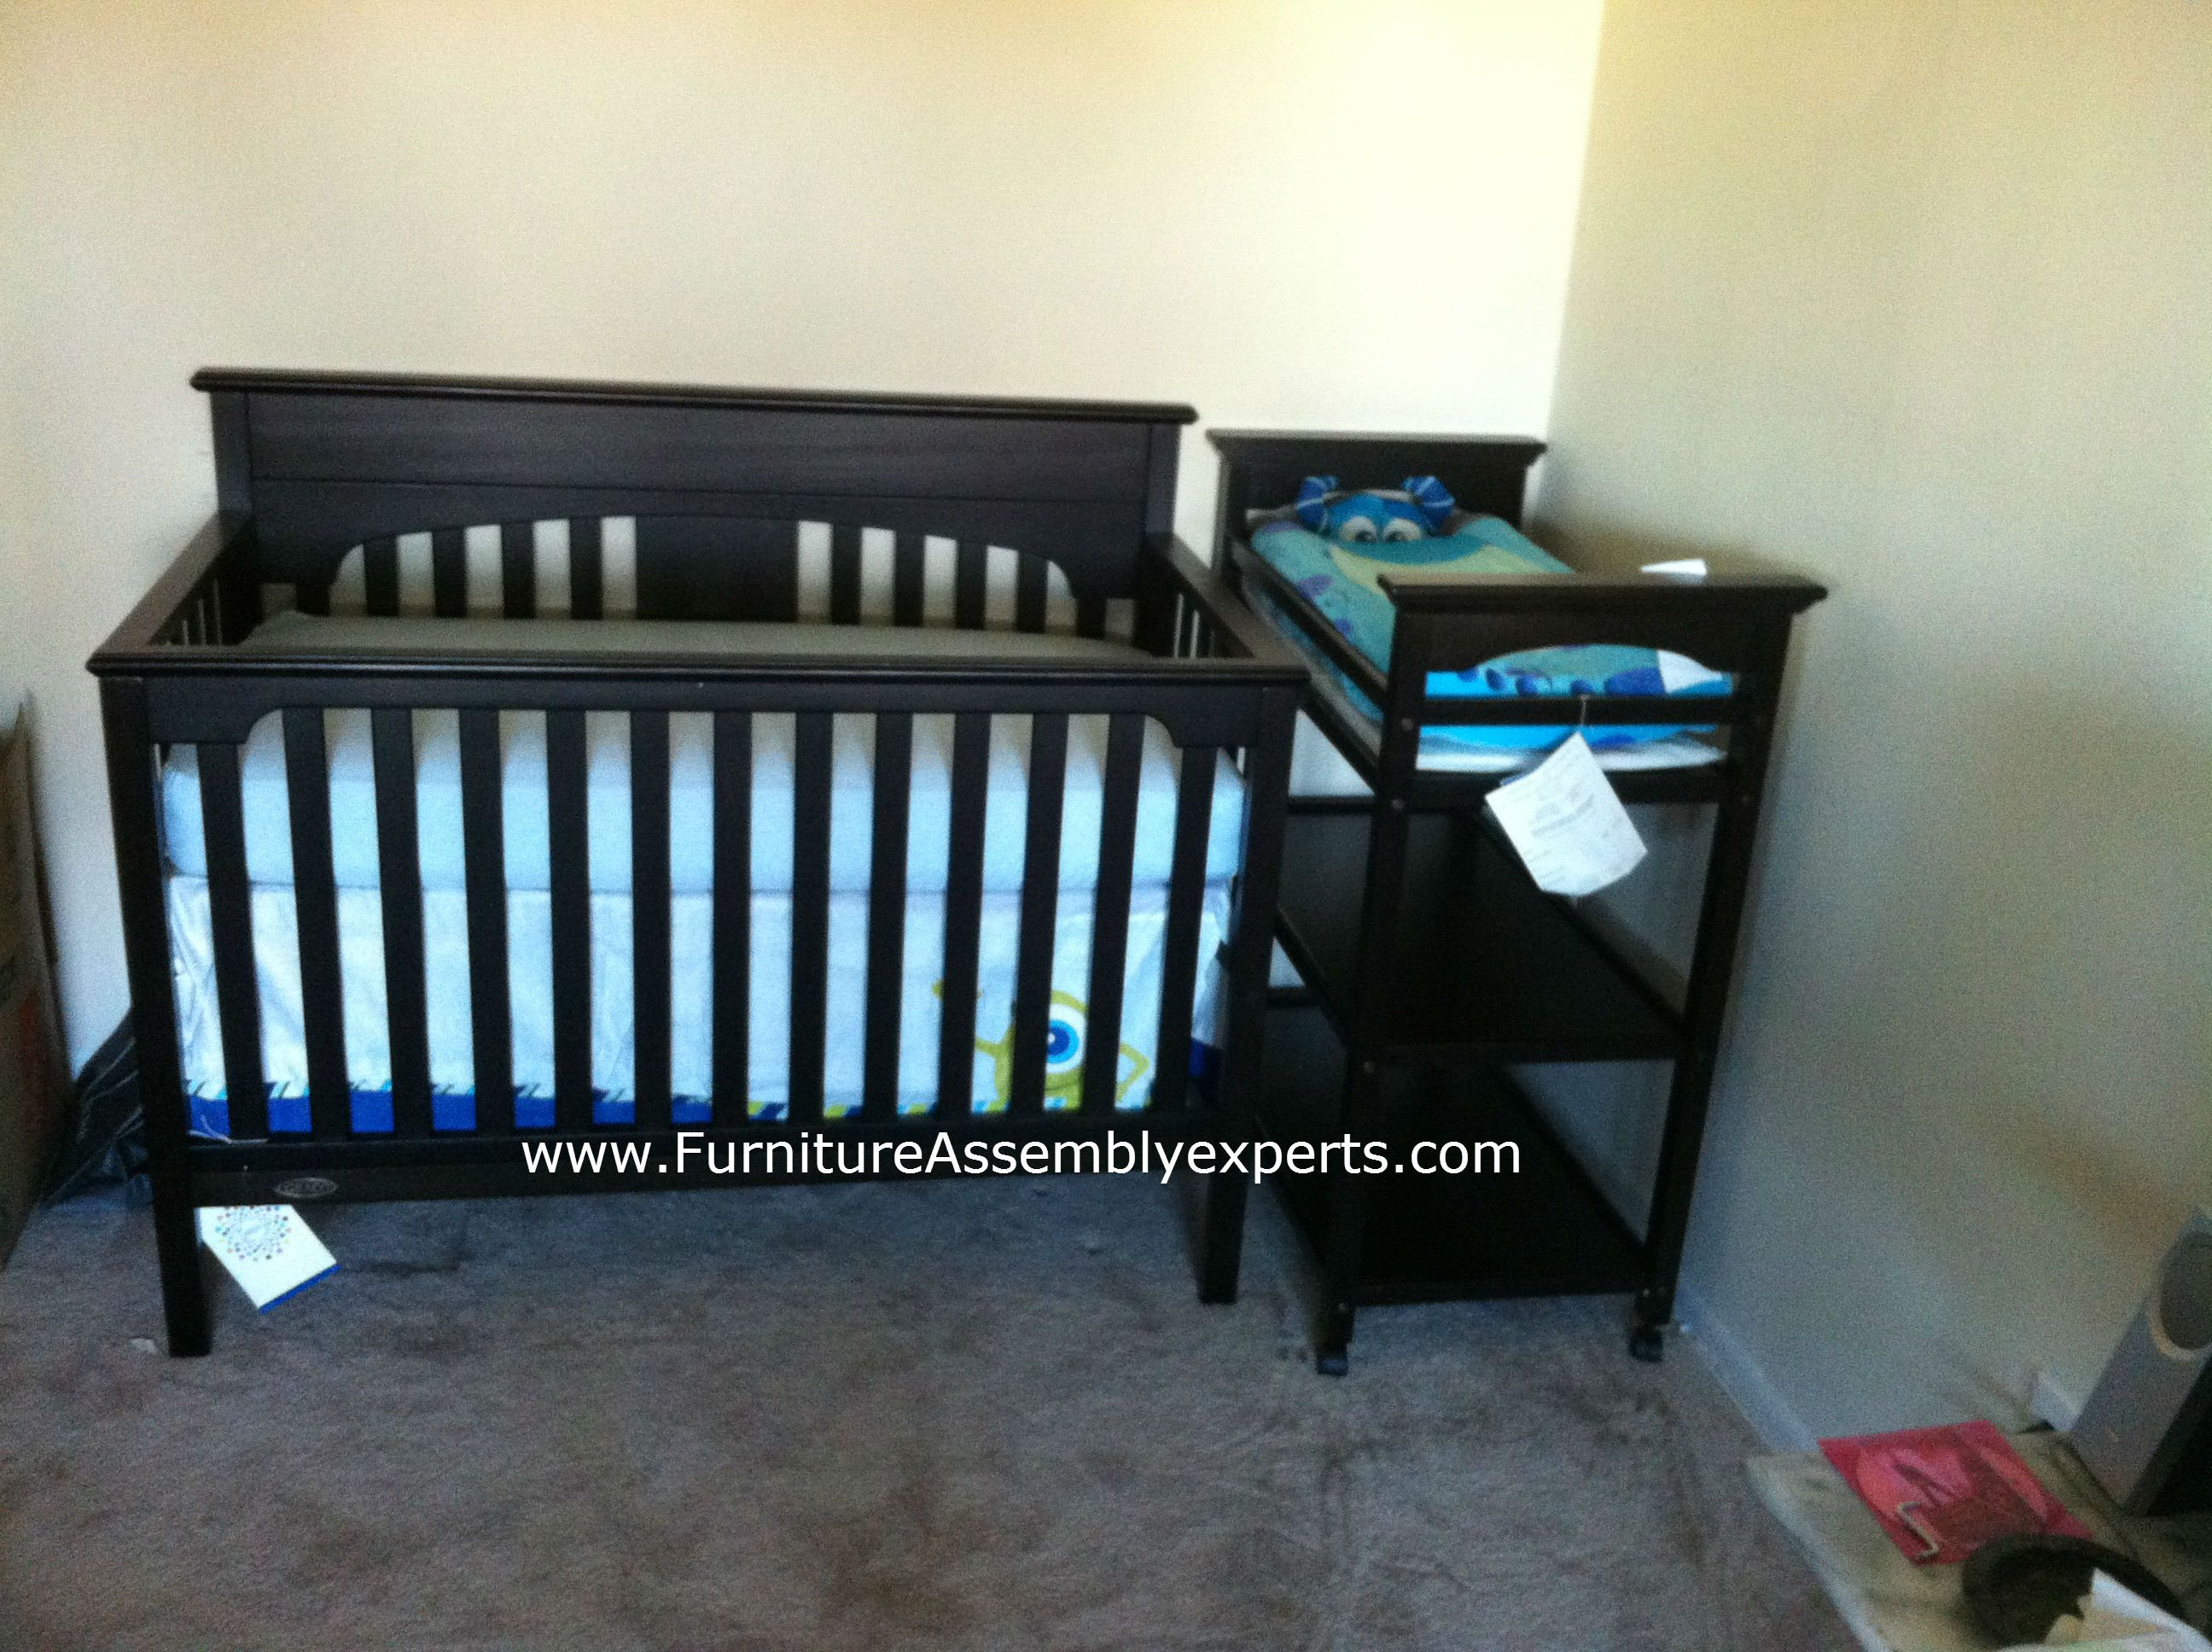 Target Baby Crib And Changing Table Assembled In Fort Washington Md By Furniture Assembly Experts Llc Call 240 Target Furniture Baby Cribs Furniture Assembly